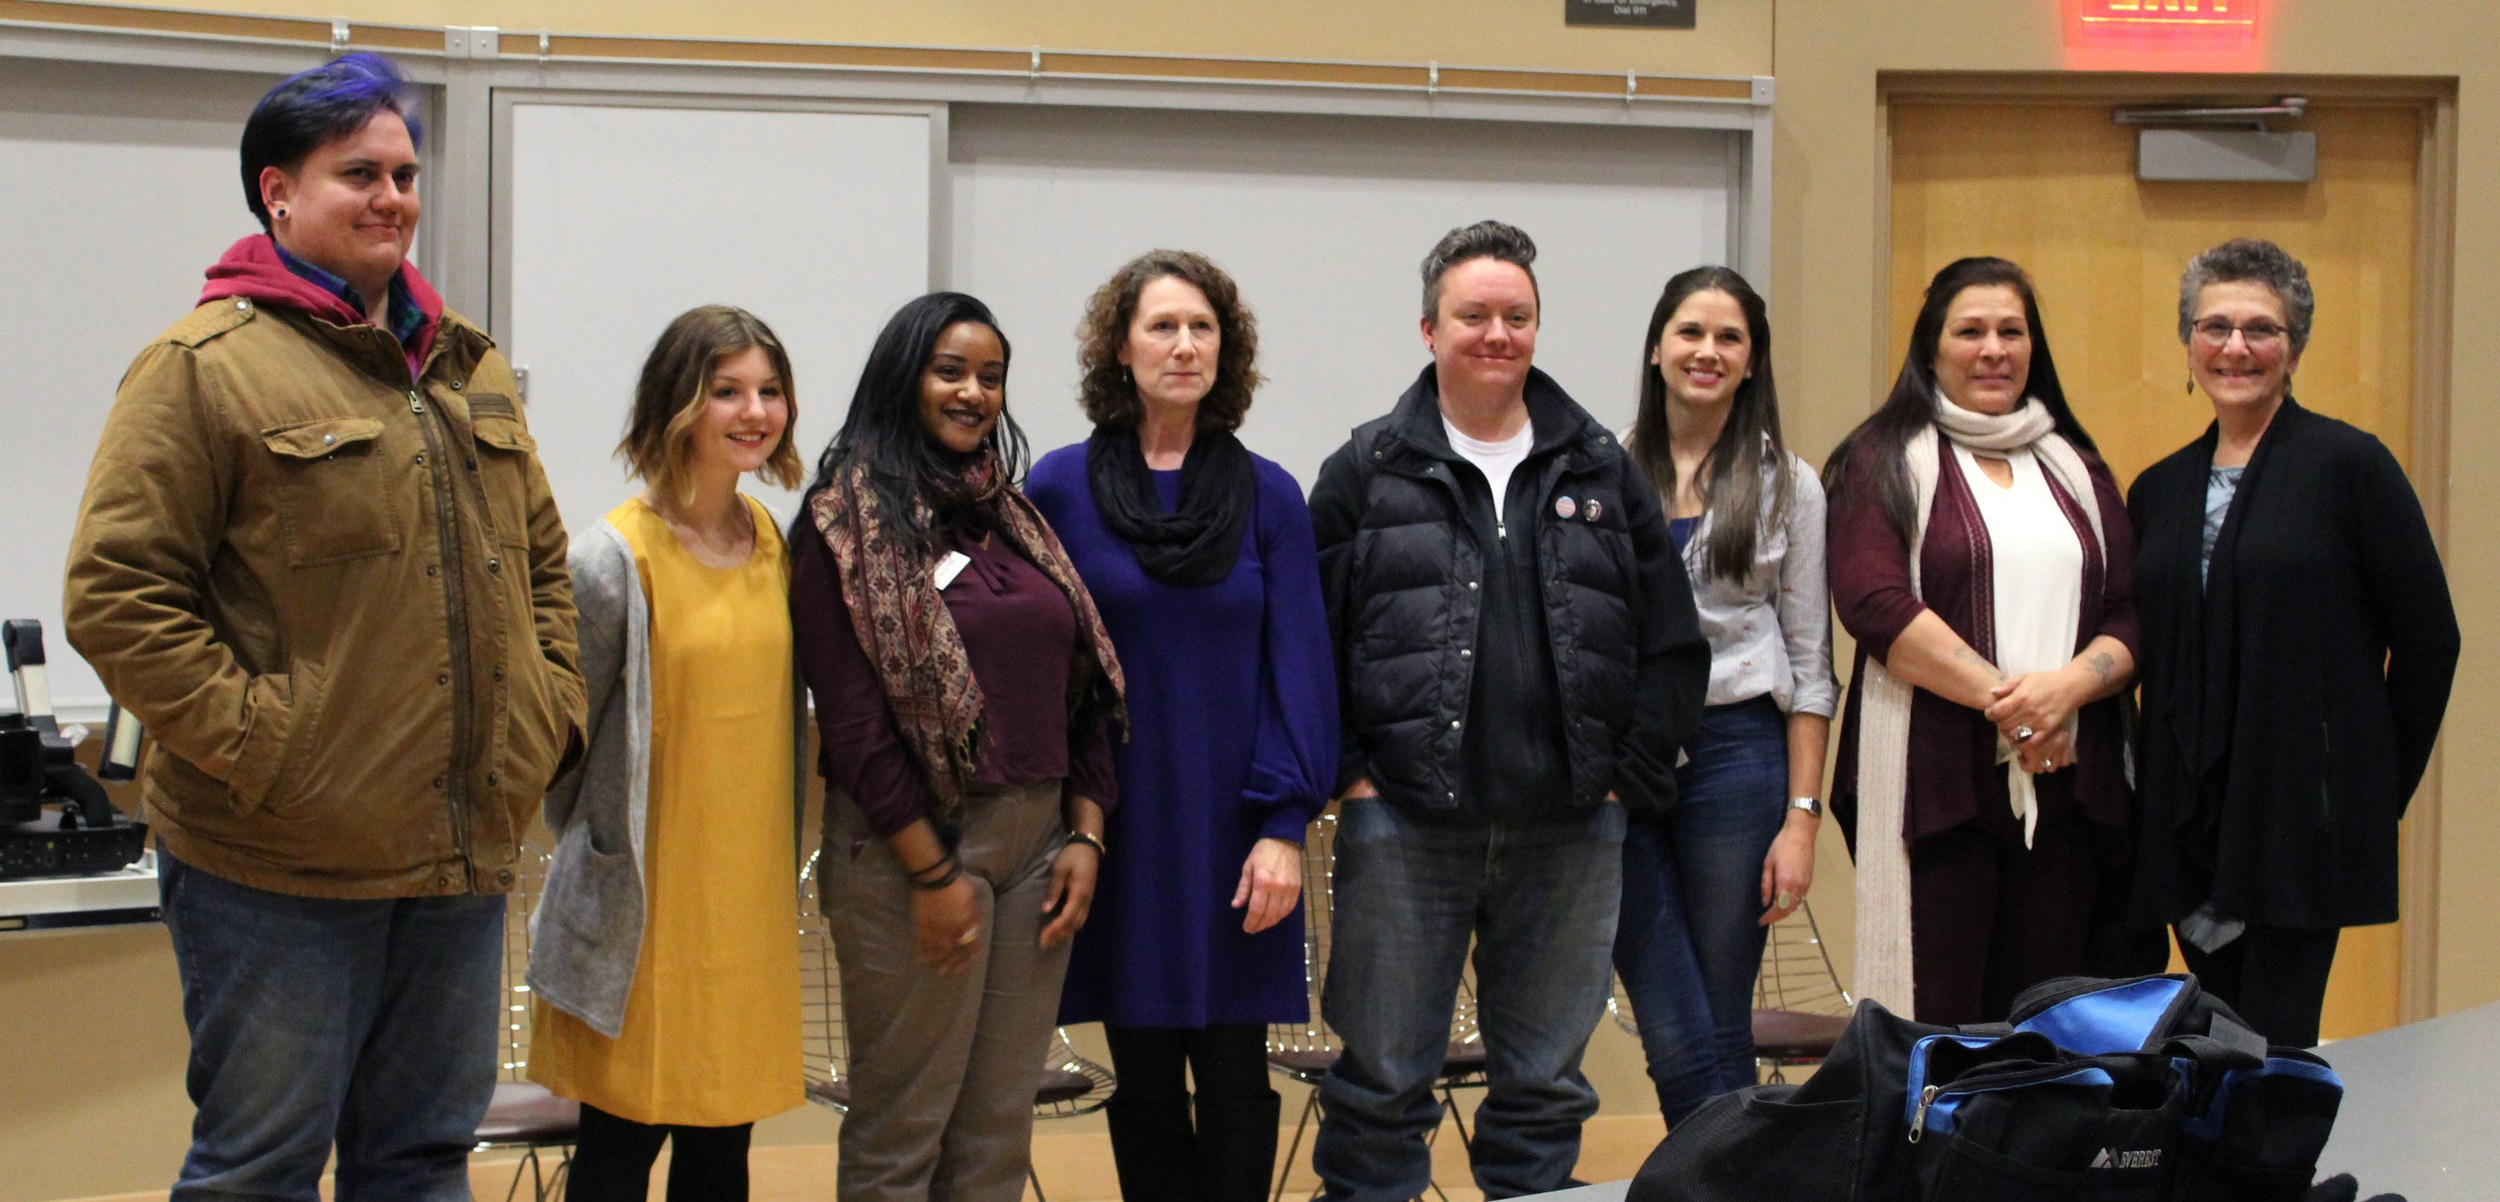 Event coordinators and community panelists from left to right: Makoons (Mak) Miller-Tanner, Megan Rabenberg, Persabelle Debela, Molly Harney, Ph.D., Sean Hayes, Niki Whittet, Rachel Goodsky, and Adele Yorde. Photo by Eema Ibrahim